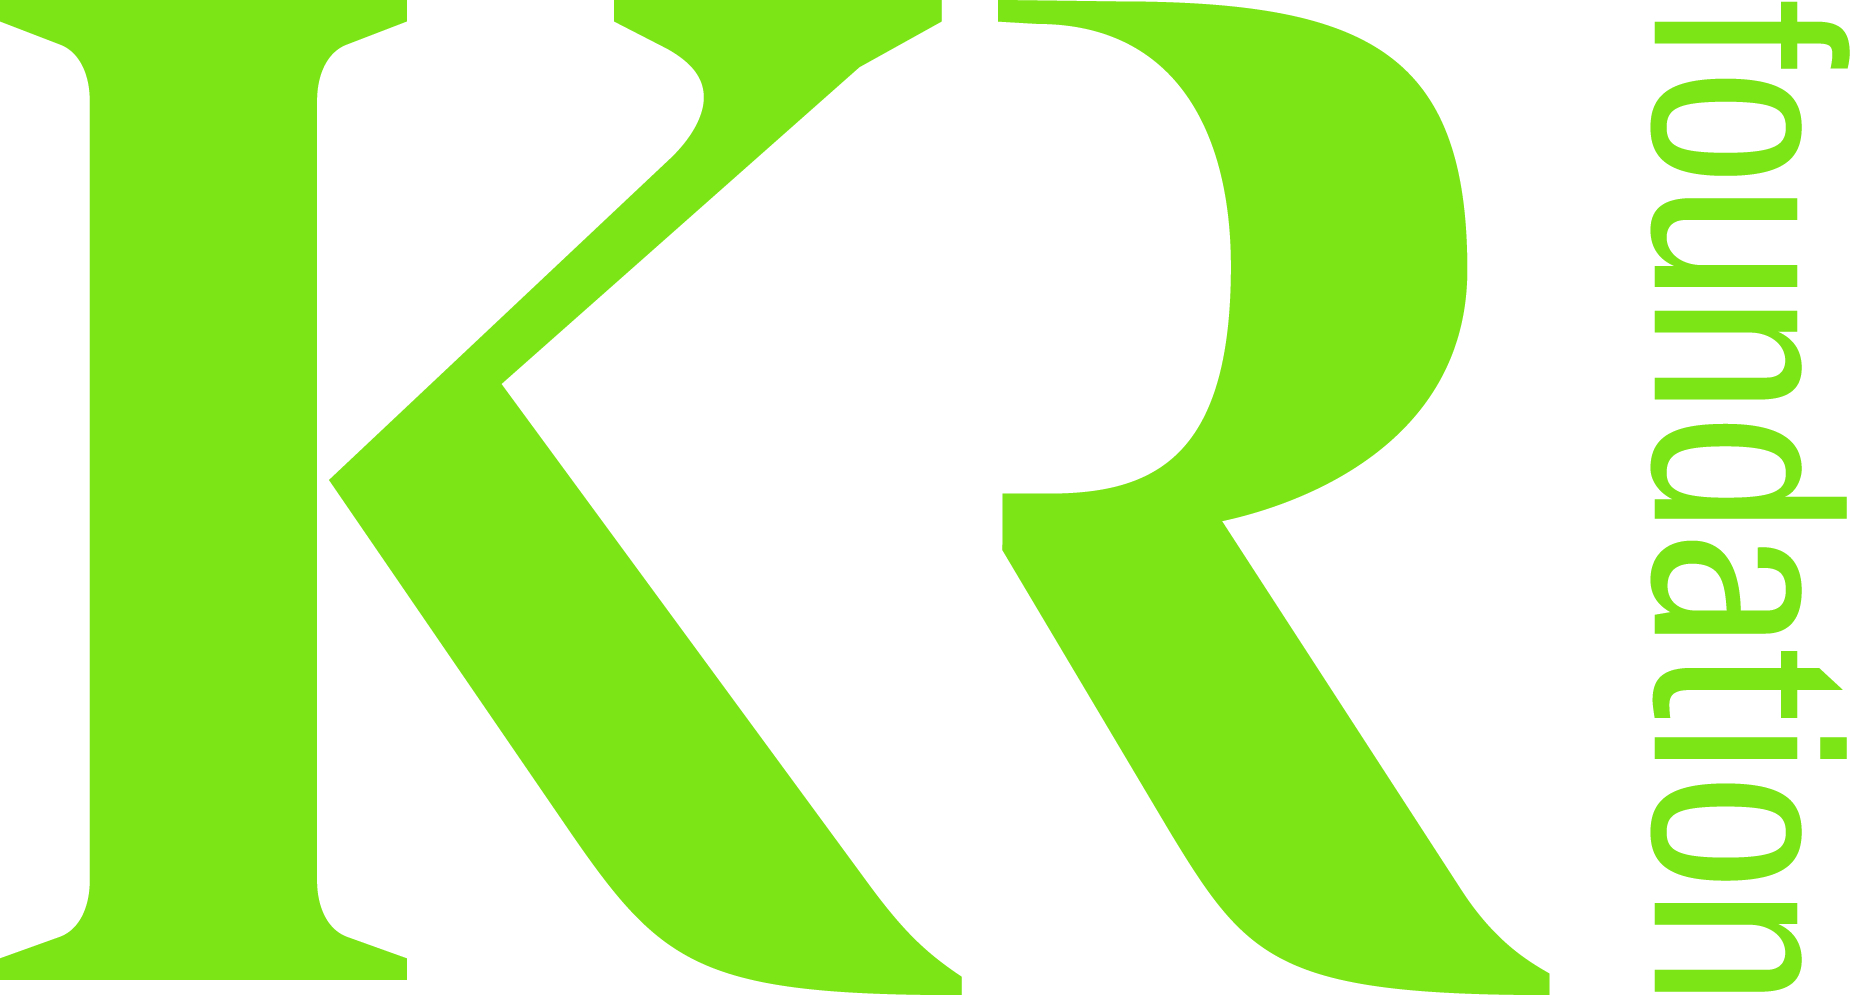 KR foundation logo green